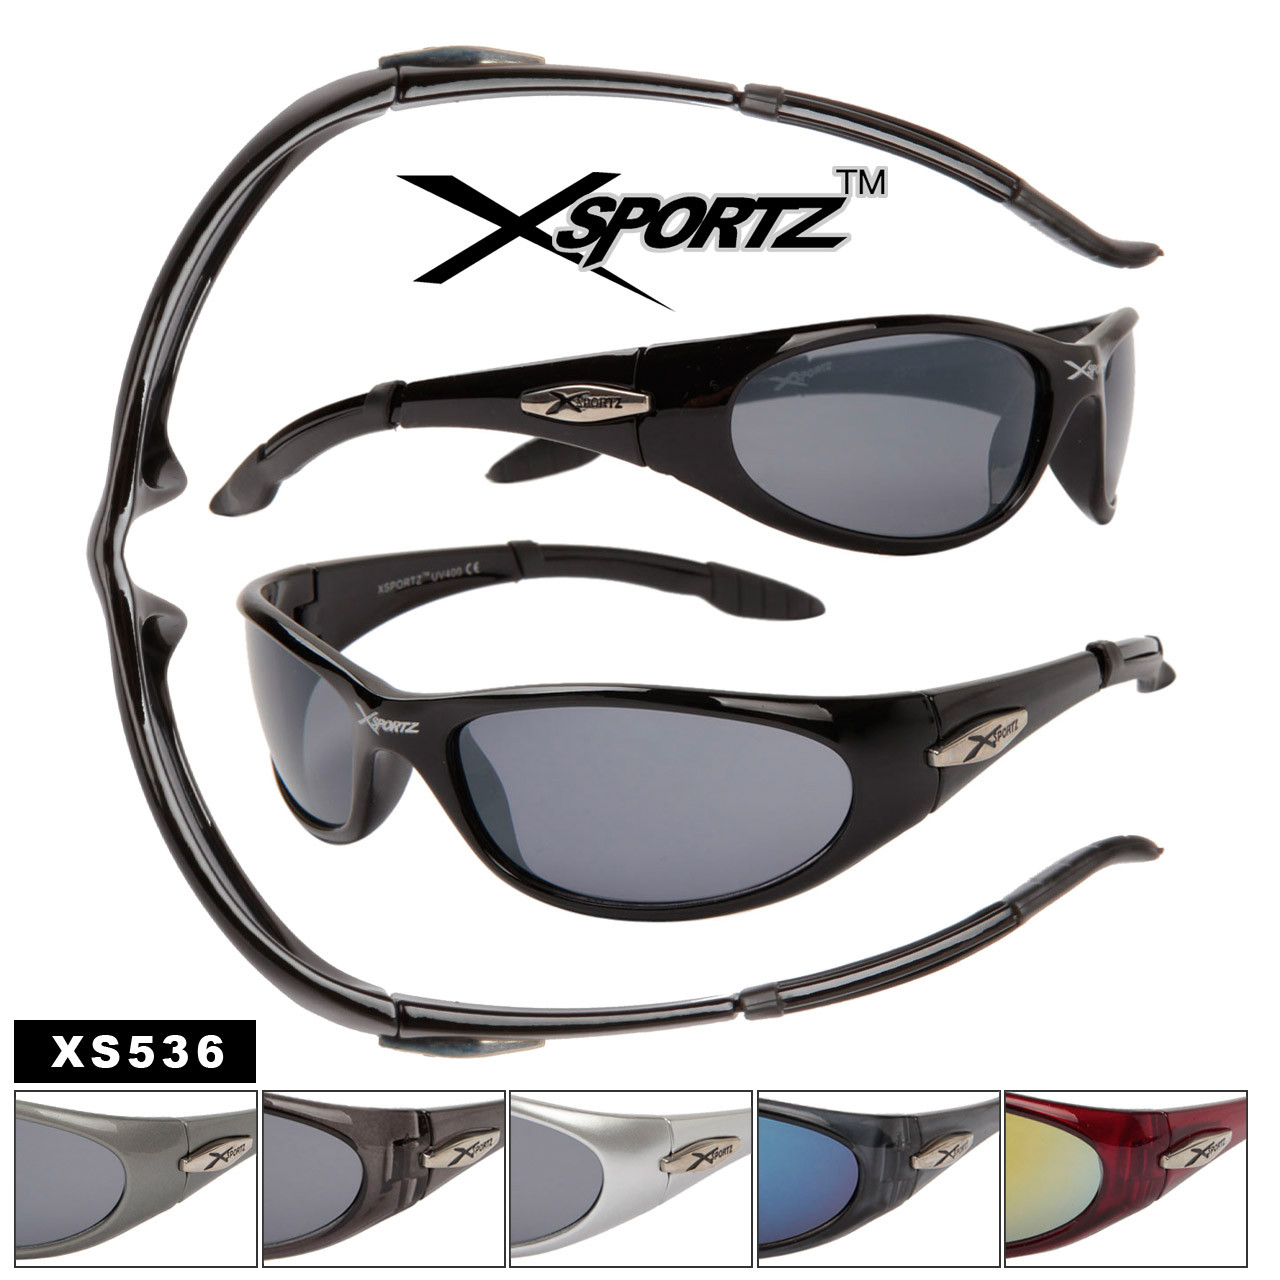 XS536 Xsportz Wholesale Sunglasses great style for men